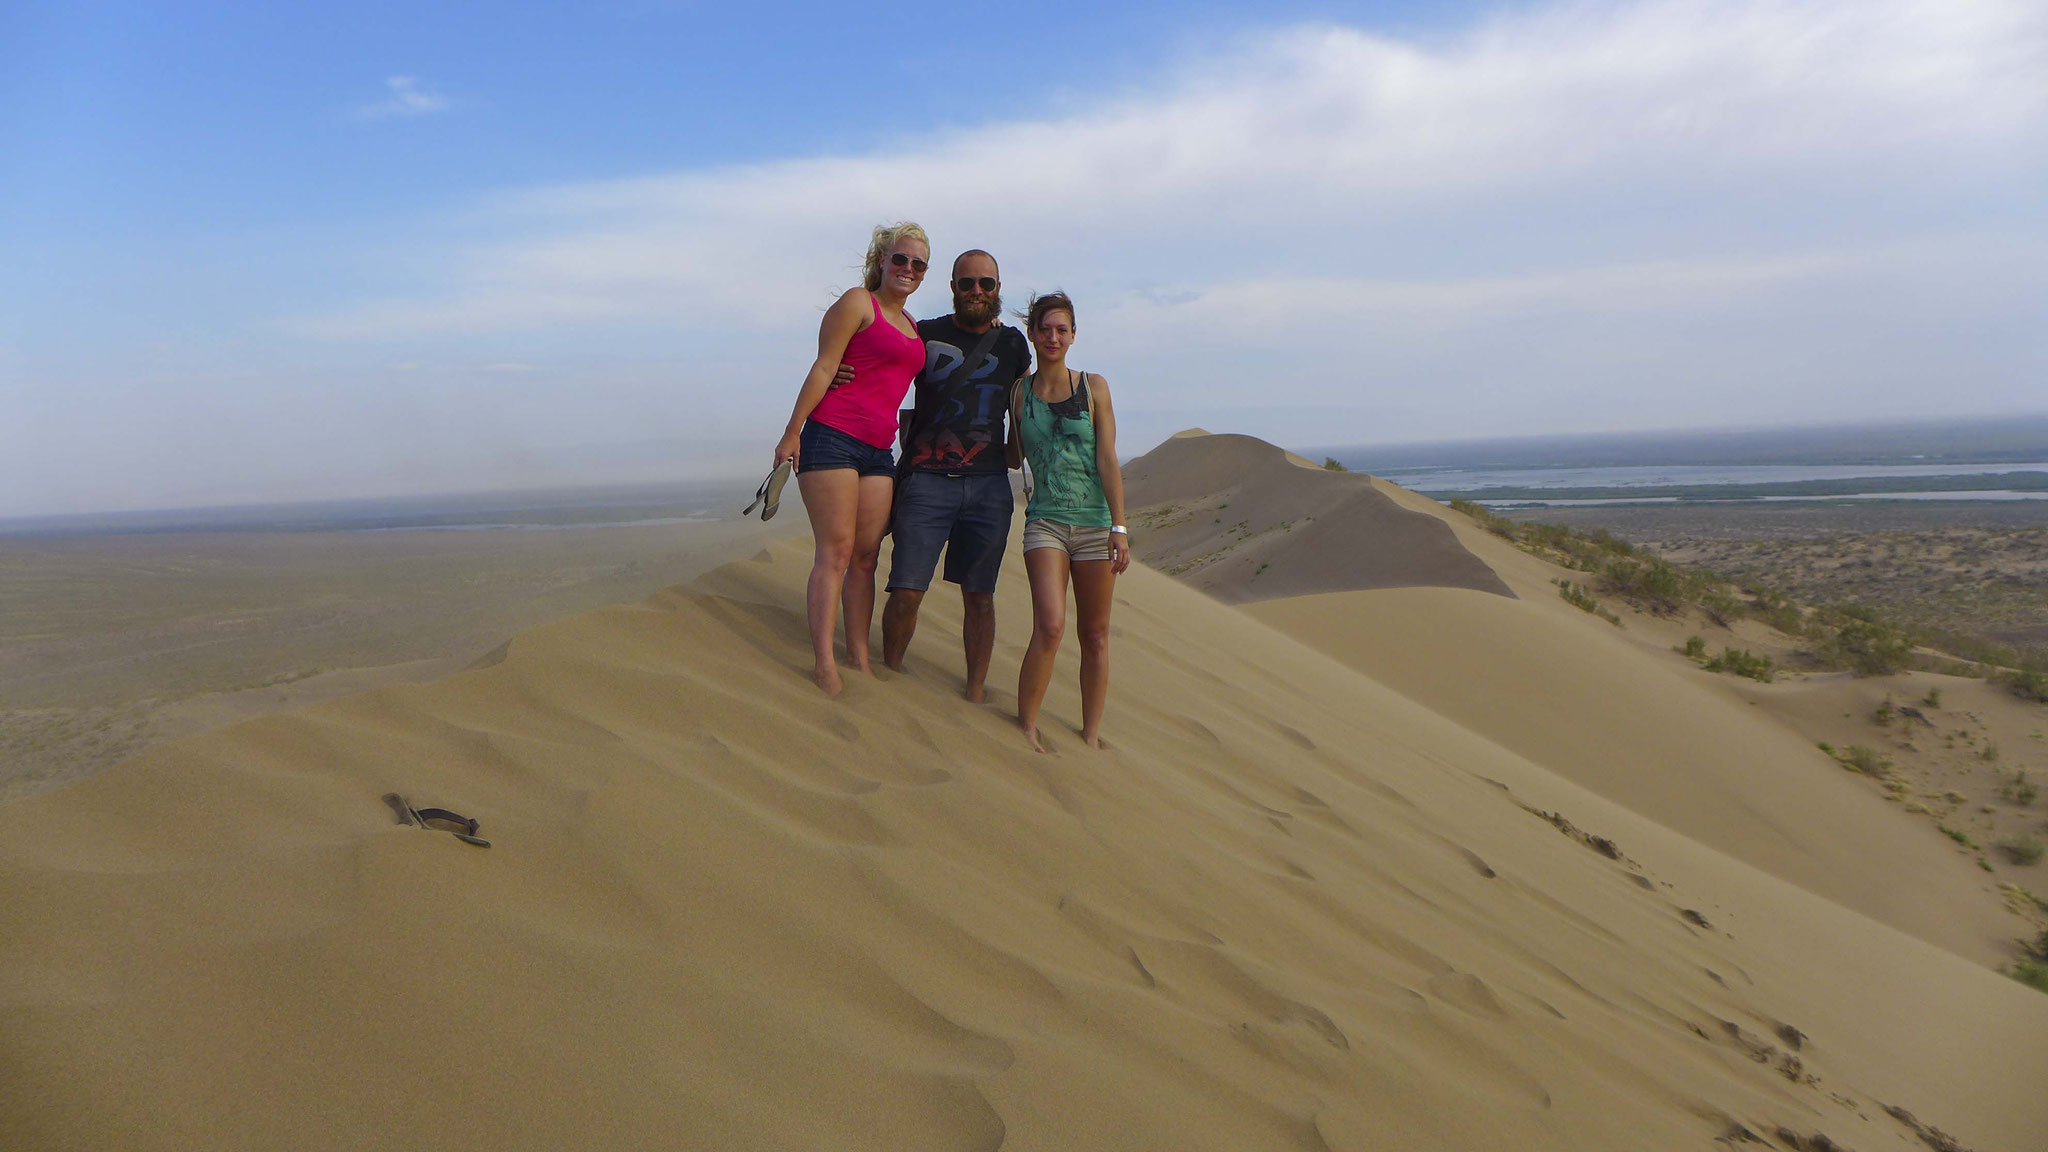 until we arrive to the top of the singing dune.